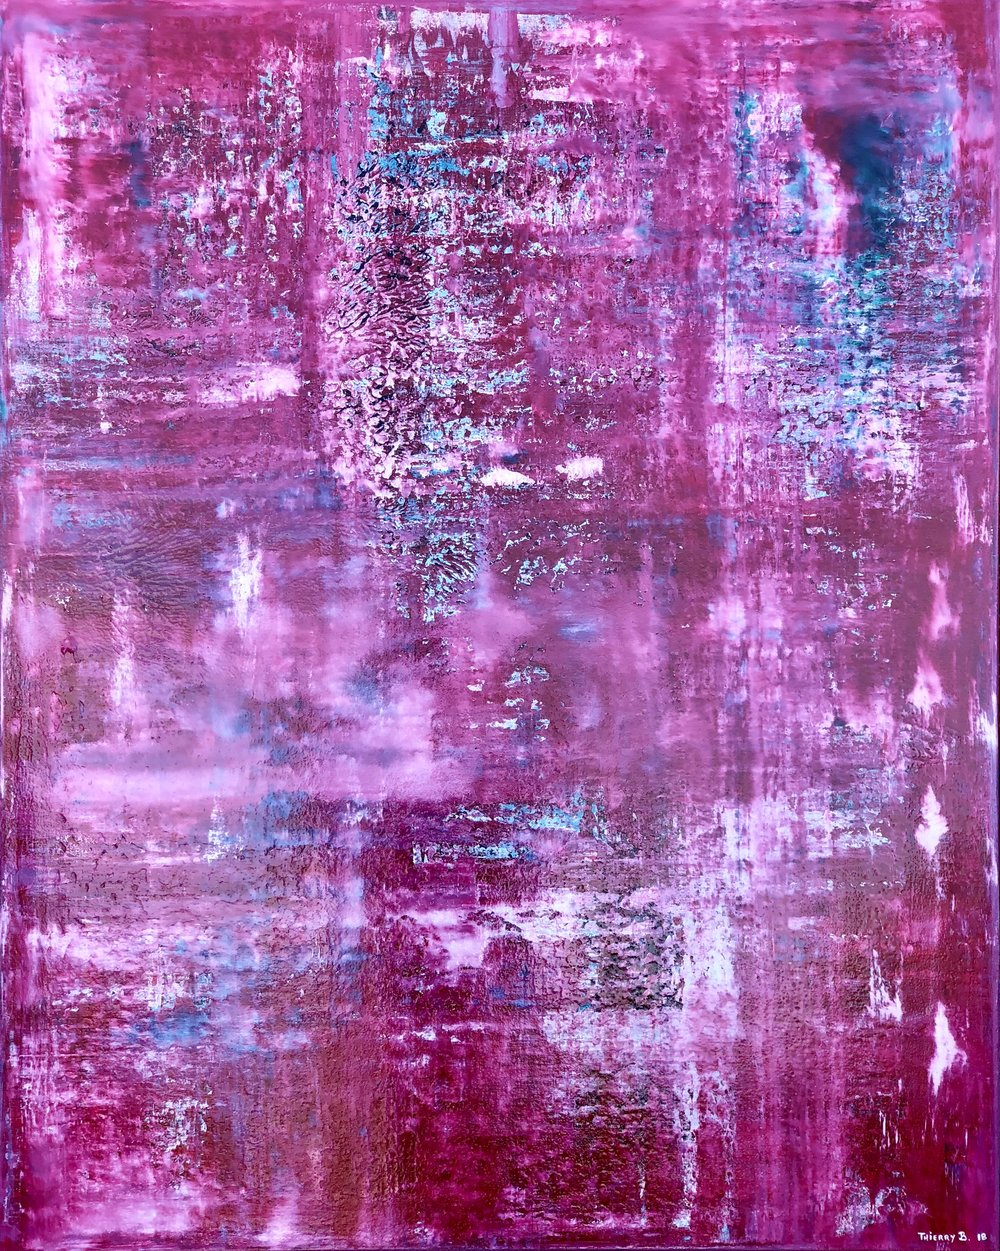 Above: Thierry B.,  A Fine Romance , Dreamscape Series, 2018, Synthetic Polymer Paint on Linen, 152 x 122cm, P.O.A